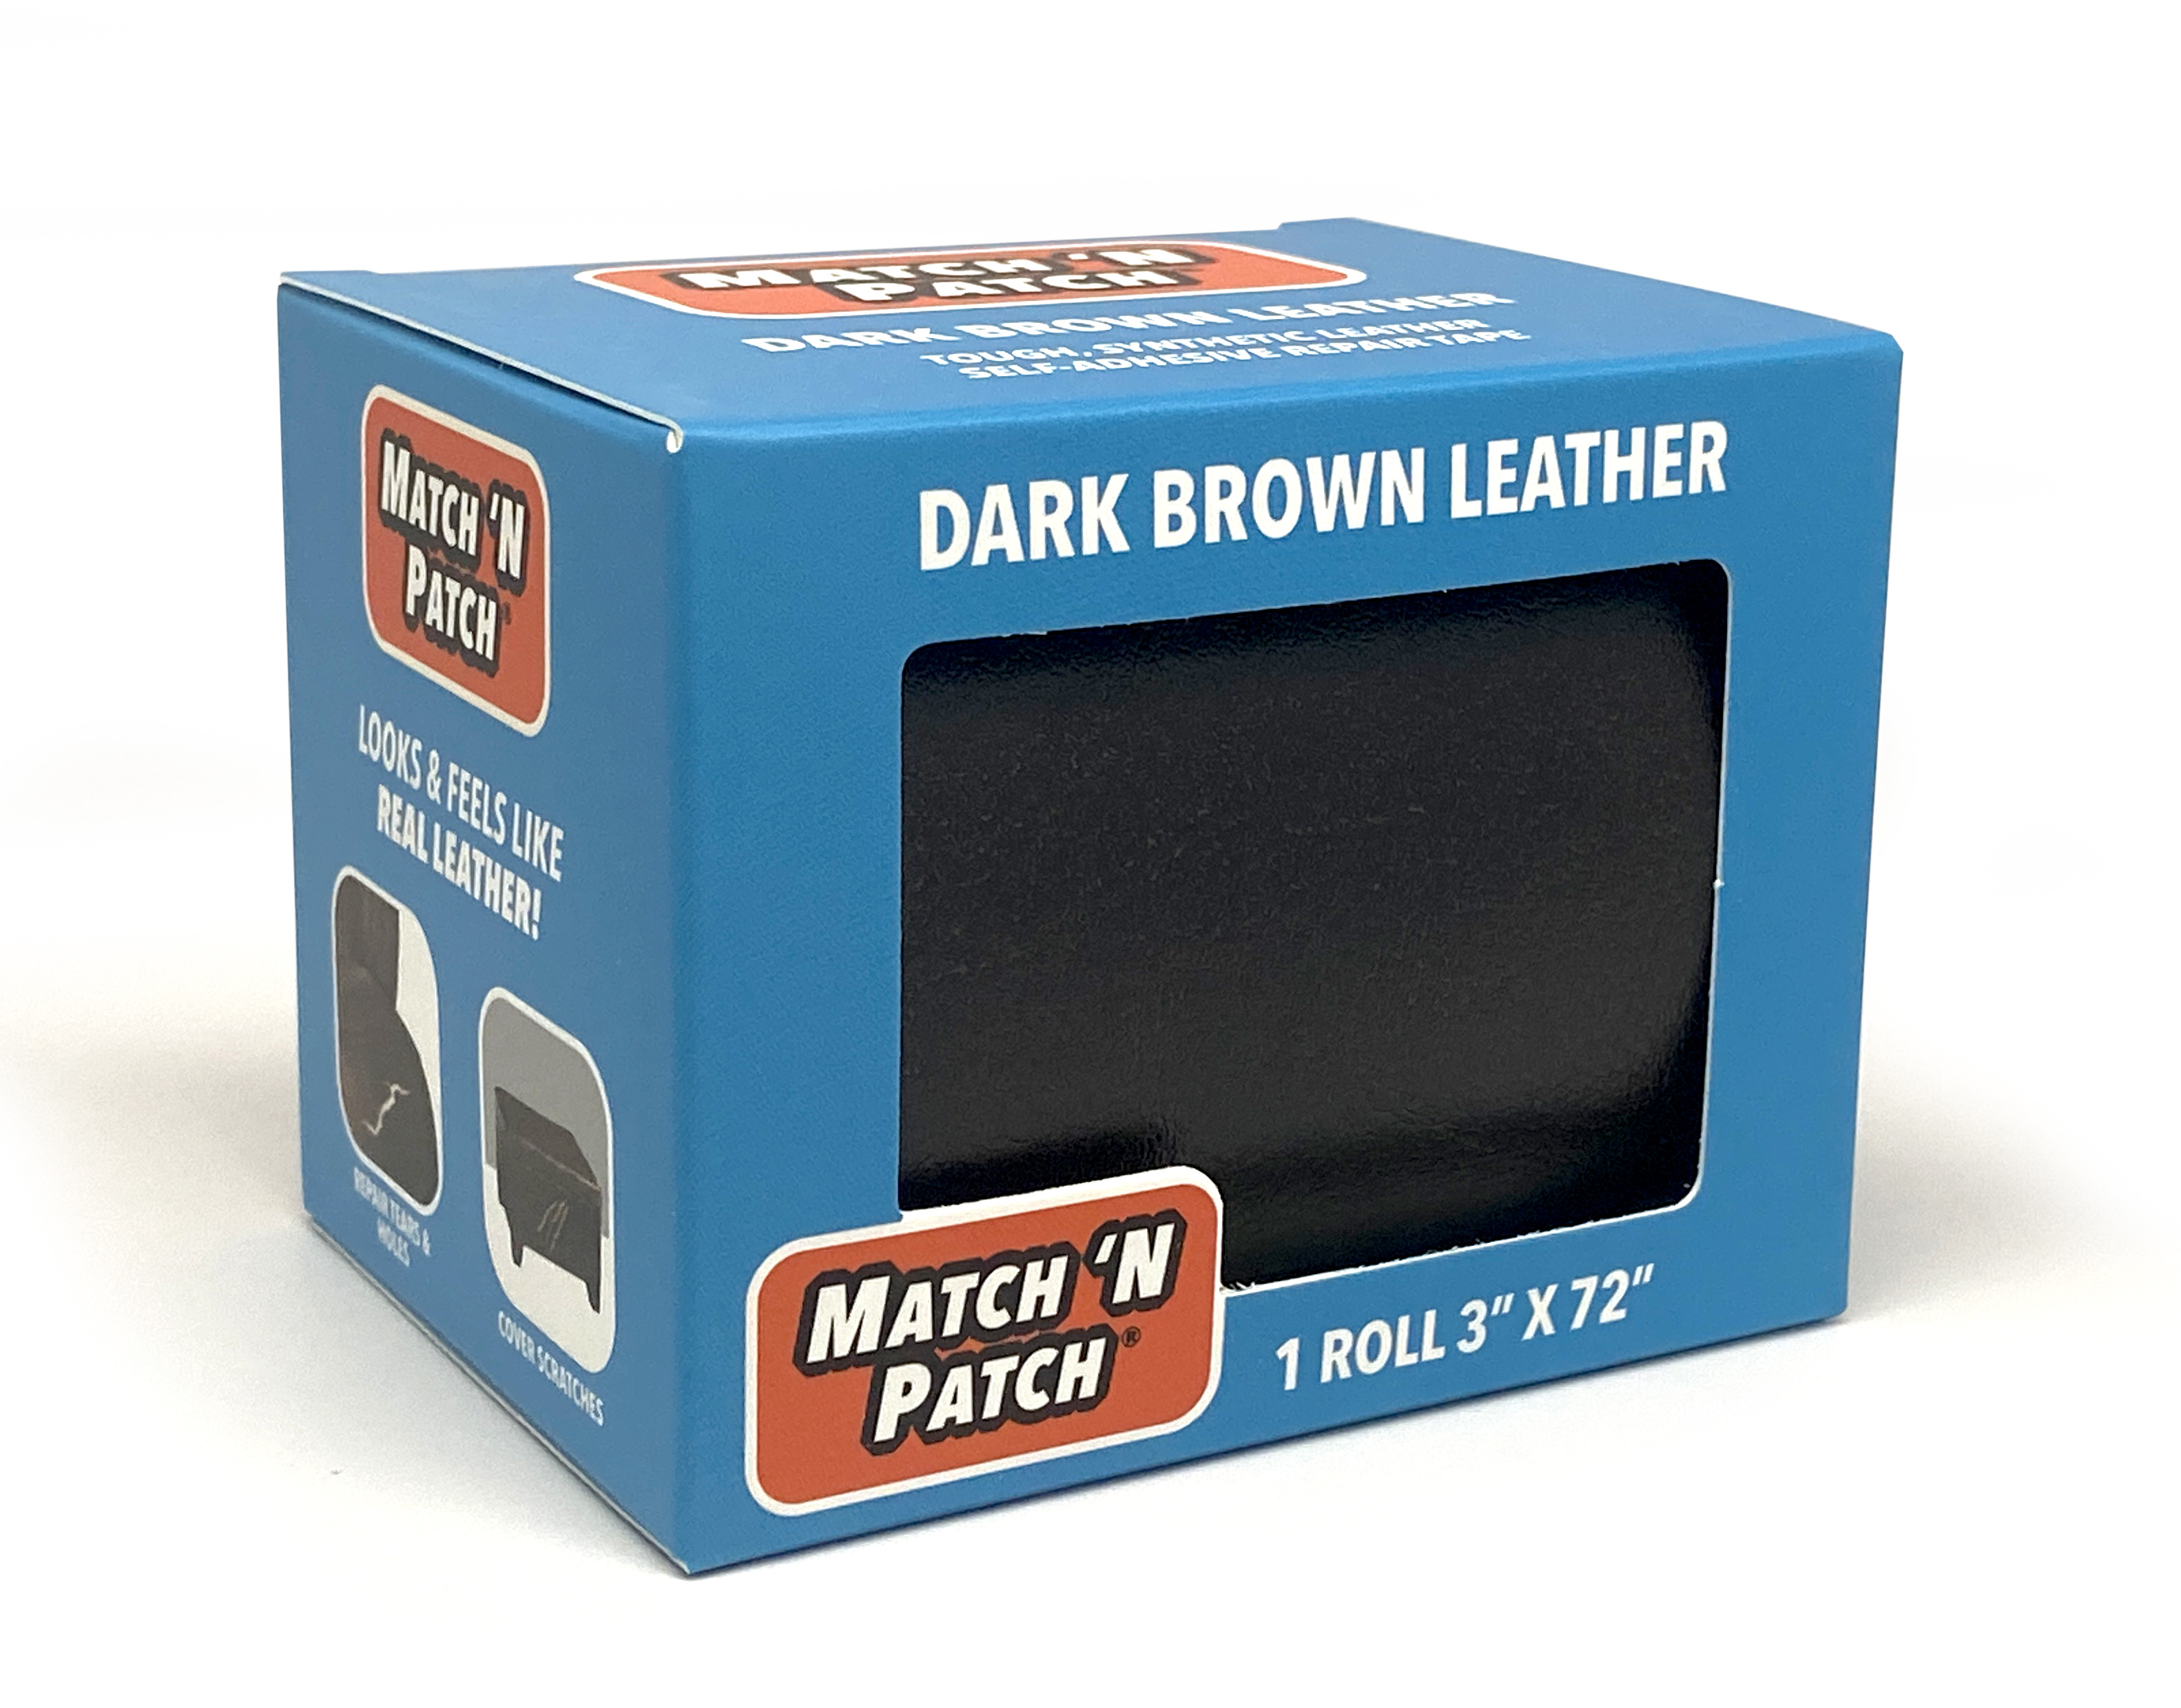 Match /'N Patch 3 inch x 72 inch Self-Adhesive Leather Repair Tape Dark Brown